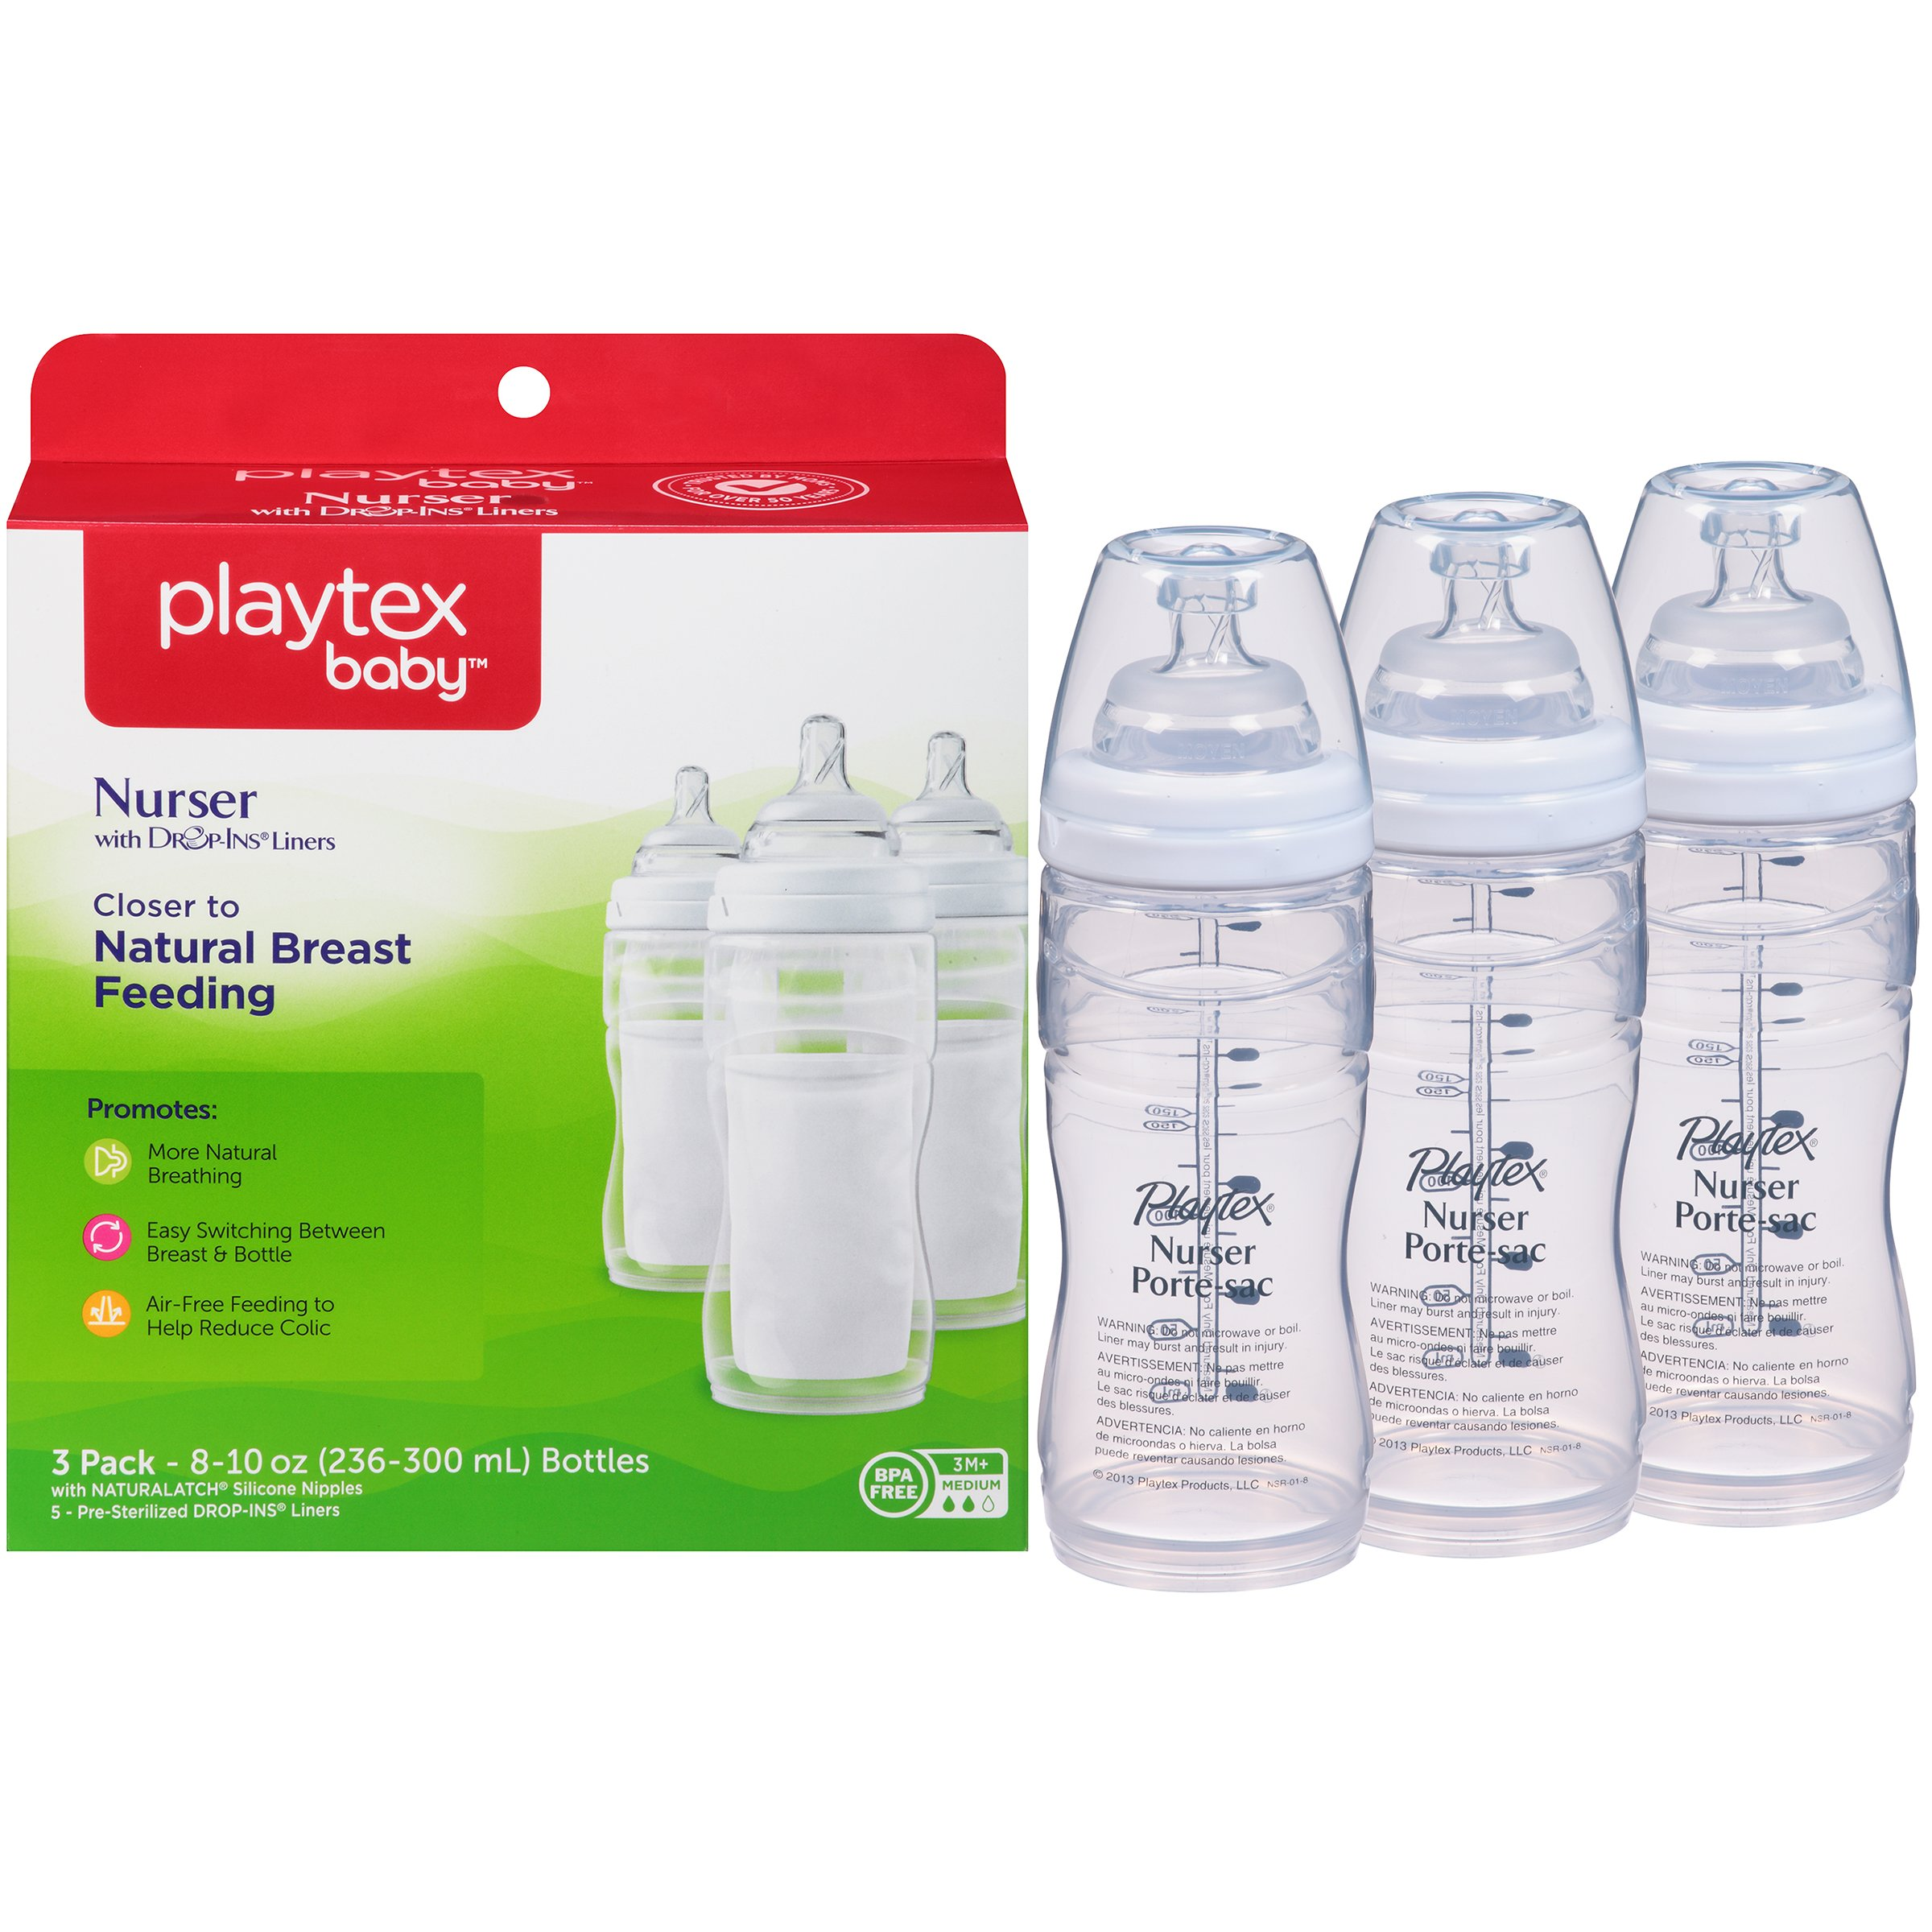 Baby Bottles Cheap Price Playtex 4oz Disposable Bottles Pre Sterilized 50 Bottles Per Box Lot Of 3 Boxes Feeding